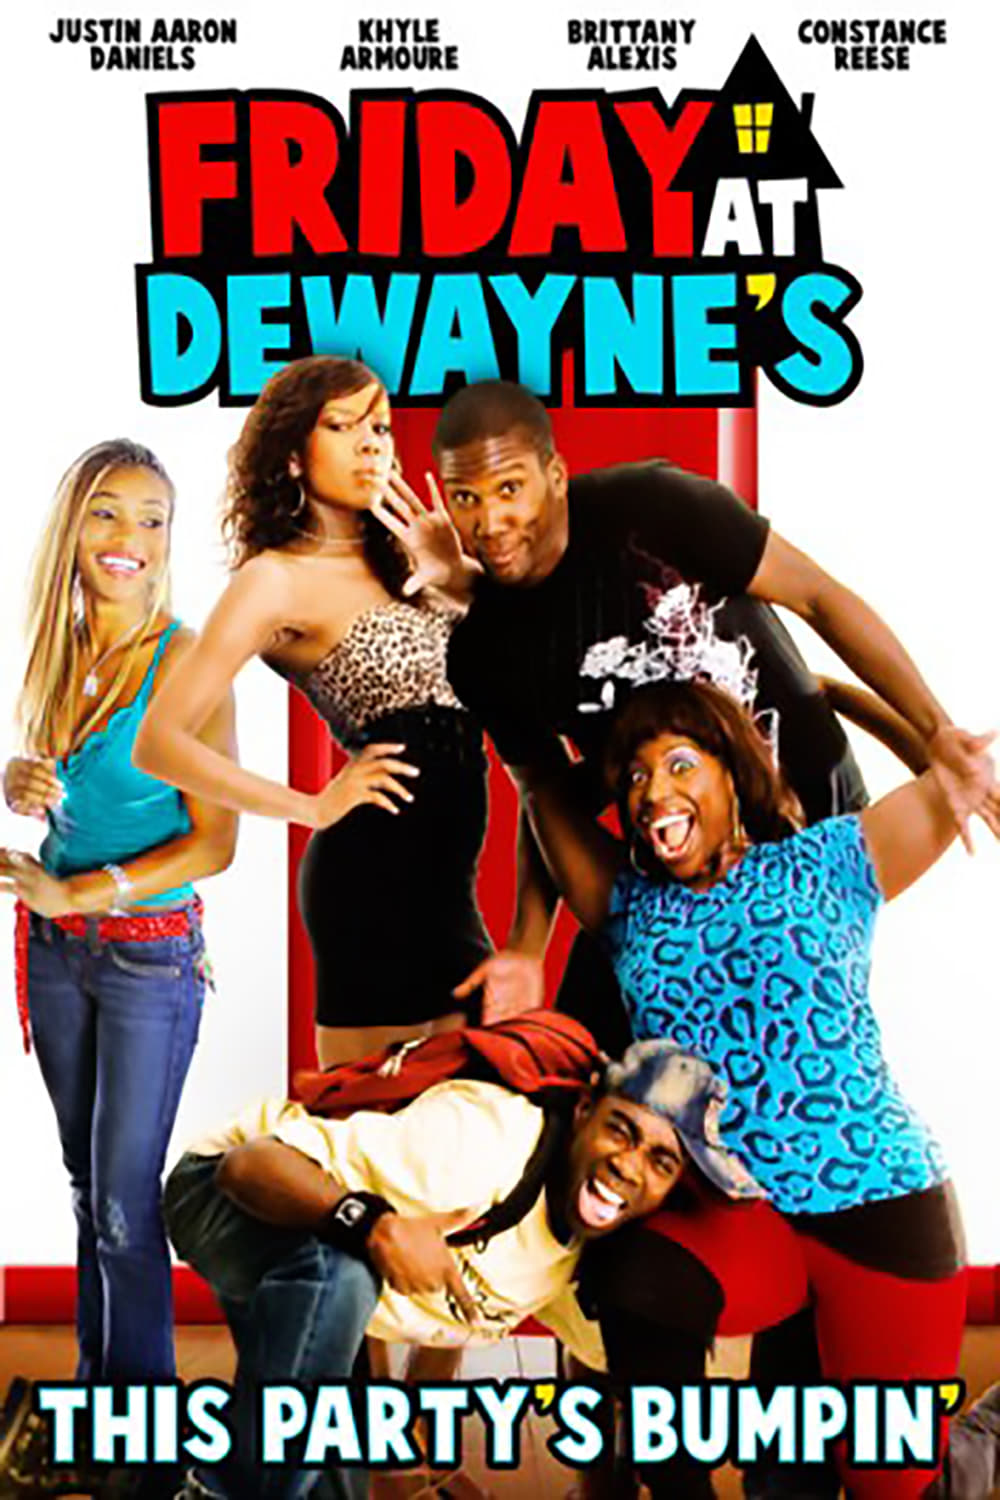 Friday at Dewayne's on FREECABLE TV